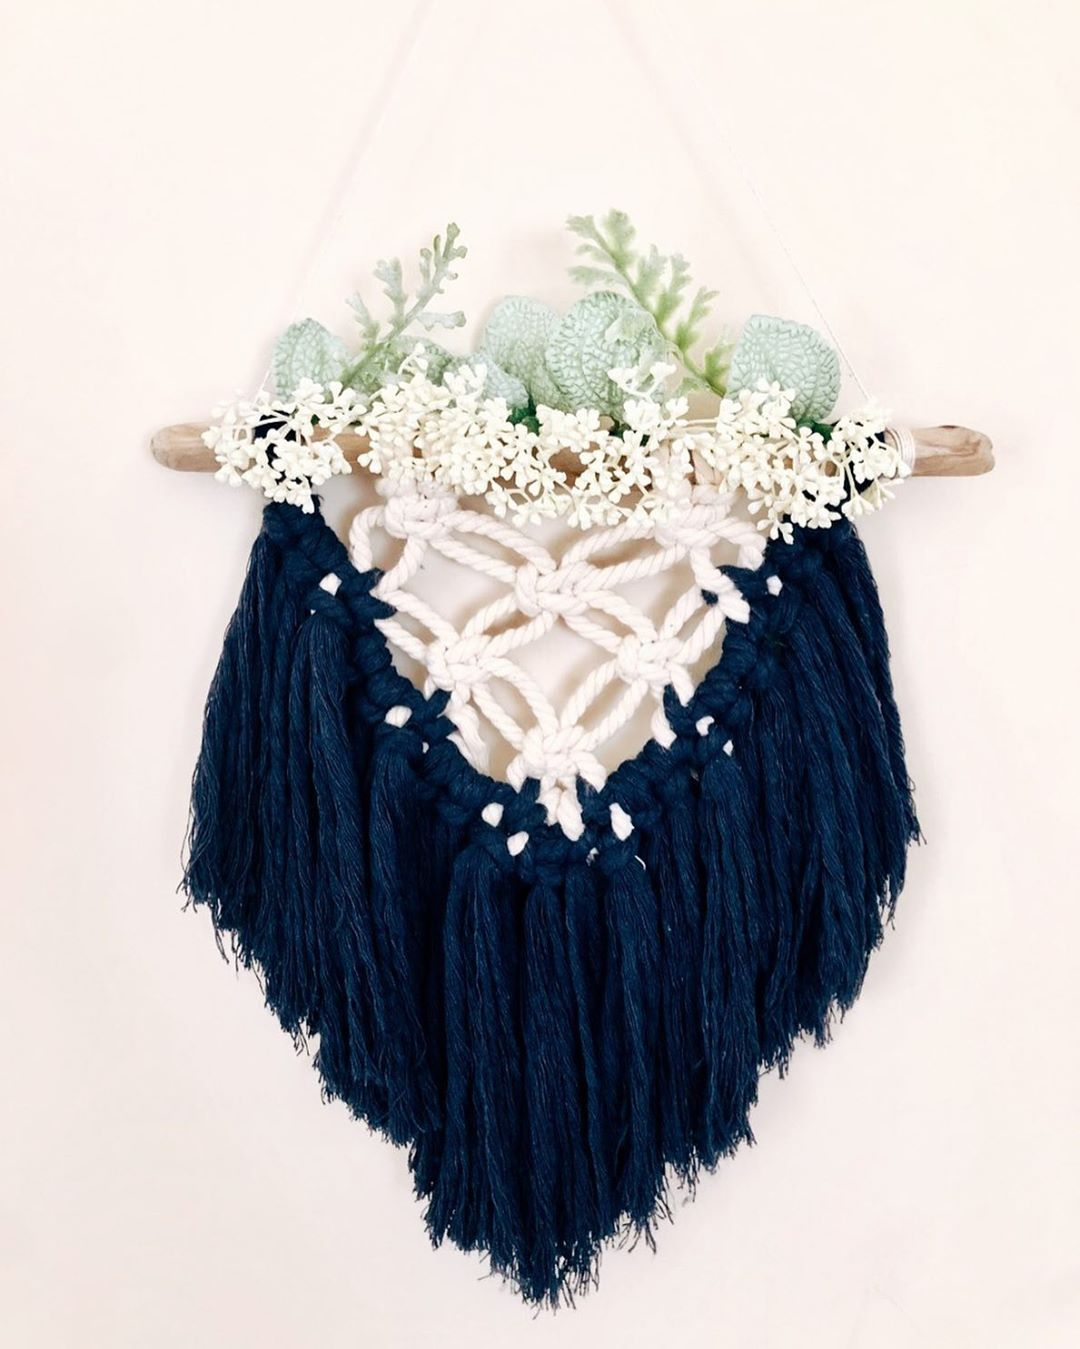 NATURAL&NAVY + baby's breath 💕  Requests and personalization are open and welcome.🌿Check my Etsy to purchase, or to contact me!🌻  Link in bio🤍  • • • • •  #lifestyle #style #artist #design #artistsofinstagram #femaleartist #knotting #girlboss #diy #boho #lifestyleblogger #macrame #fiberart #fibreart #fibreartist #fiberartist #etsy #etsyshop #smallbusiness #makersgonnamake #maker #handmade #walldecor #supportlocal #boho #bohochic #mighty_macrame #fiberfeatures #macramovement